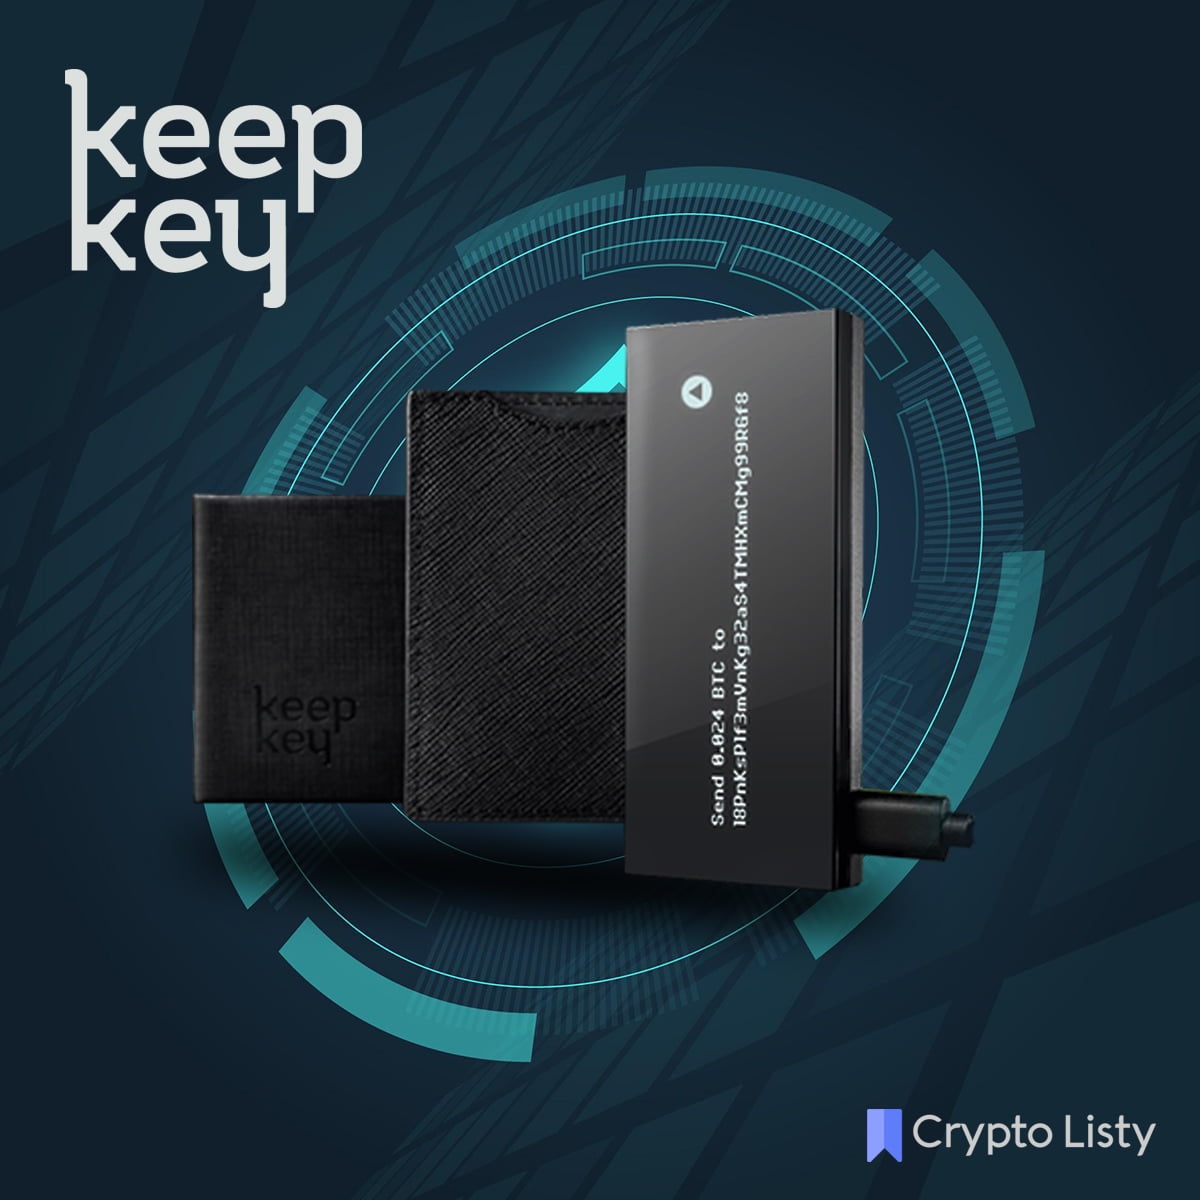 KeepKey device and wallets next to it